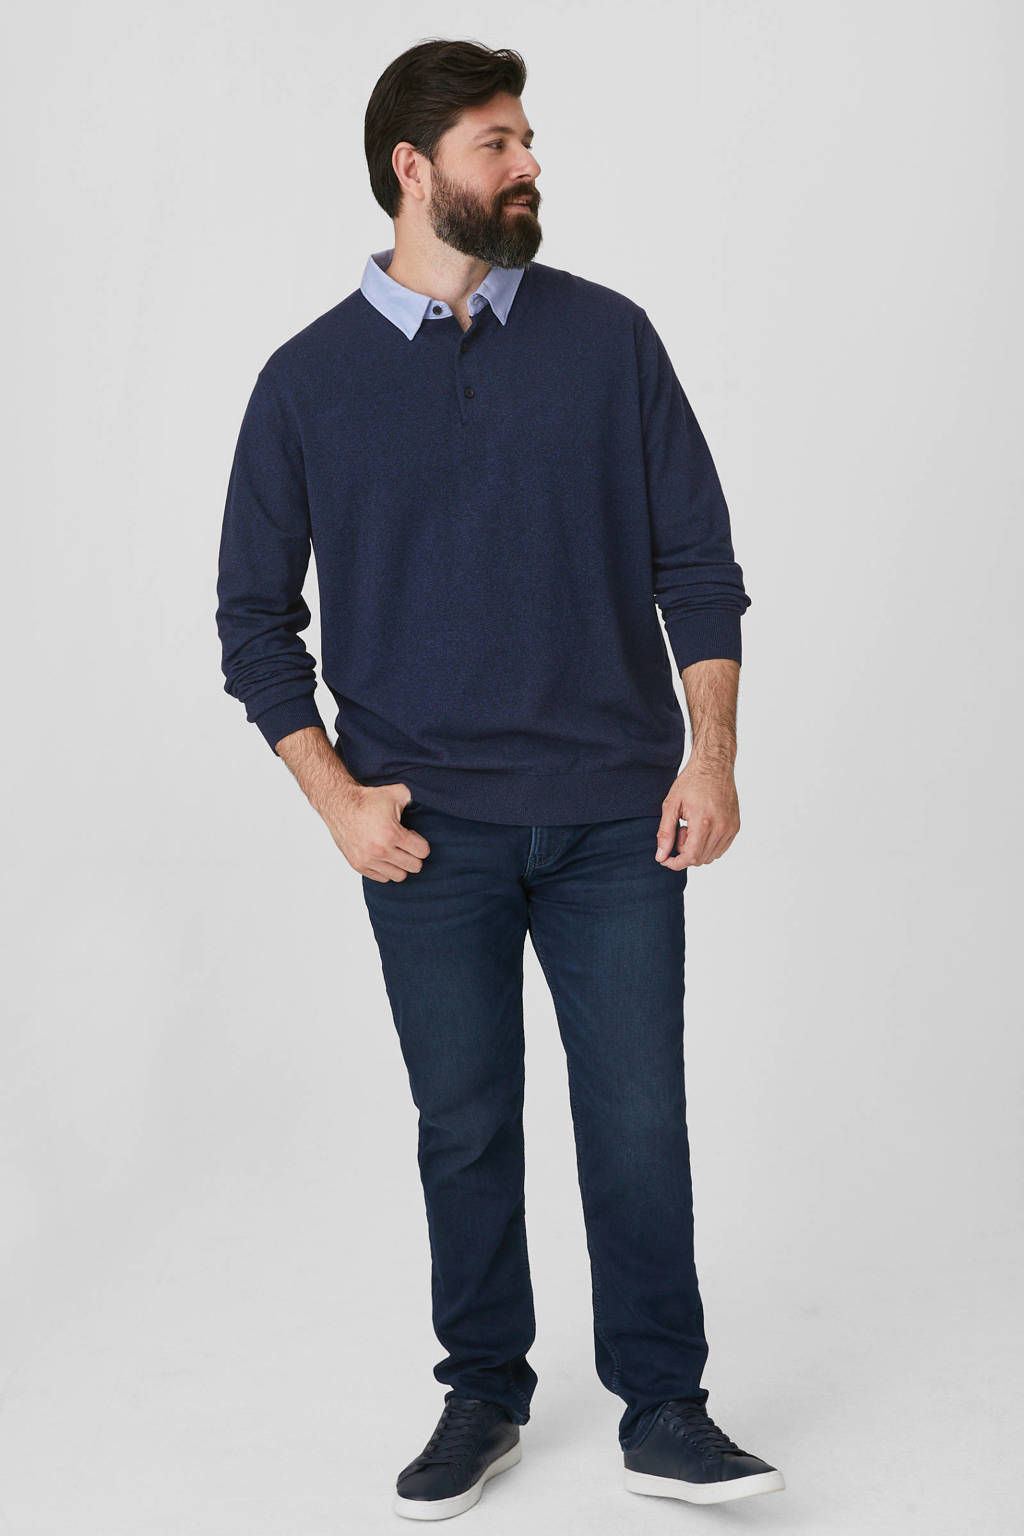 C&A XL regular fit polo donkerblauw, Donkerblauw